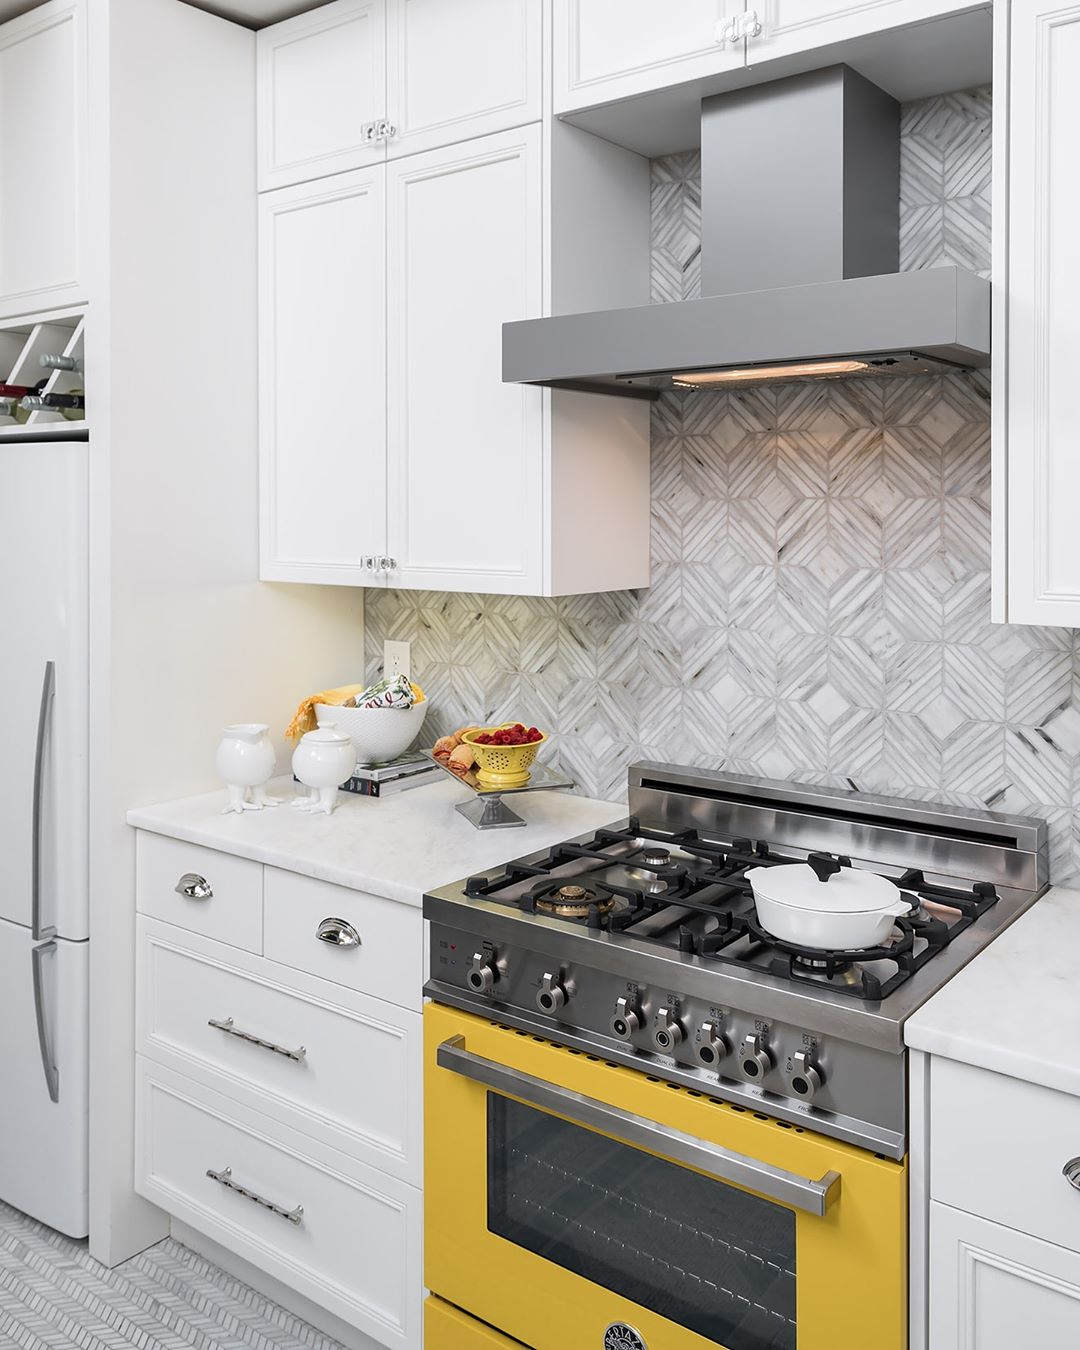 kitchen trends, colorful kitchen design, Bertazzoni Italian kitchen design, yellow freestanding cooker